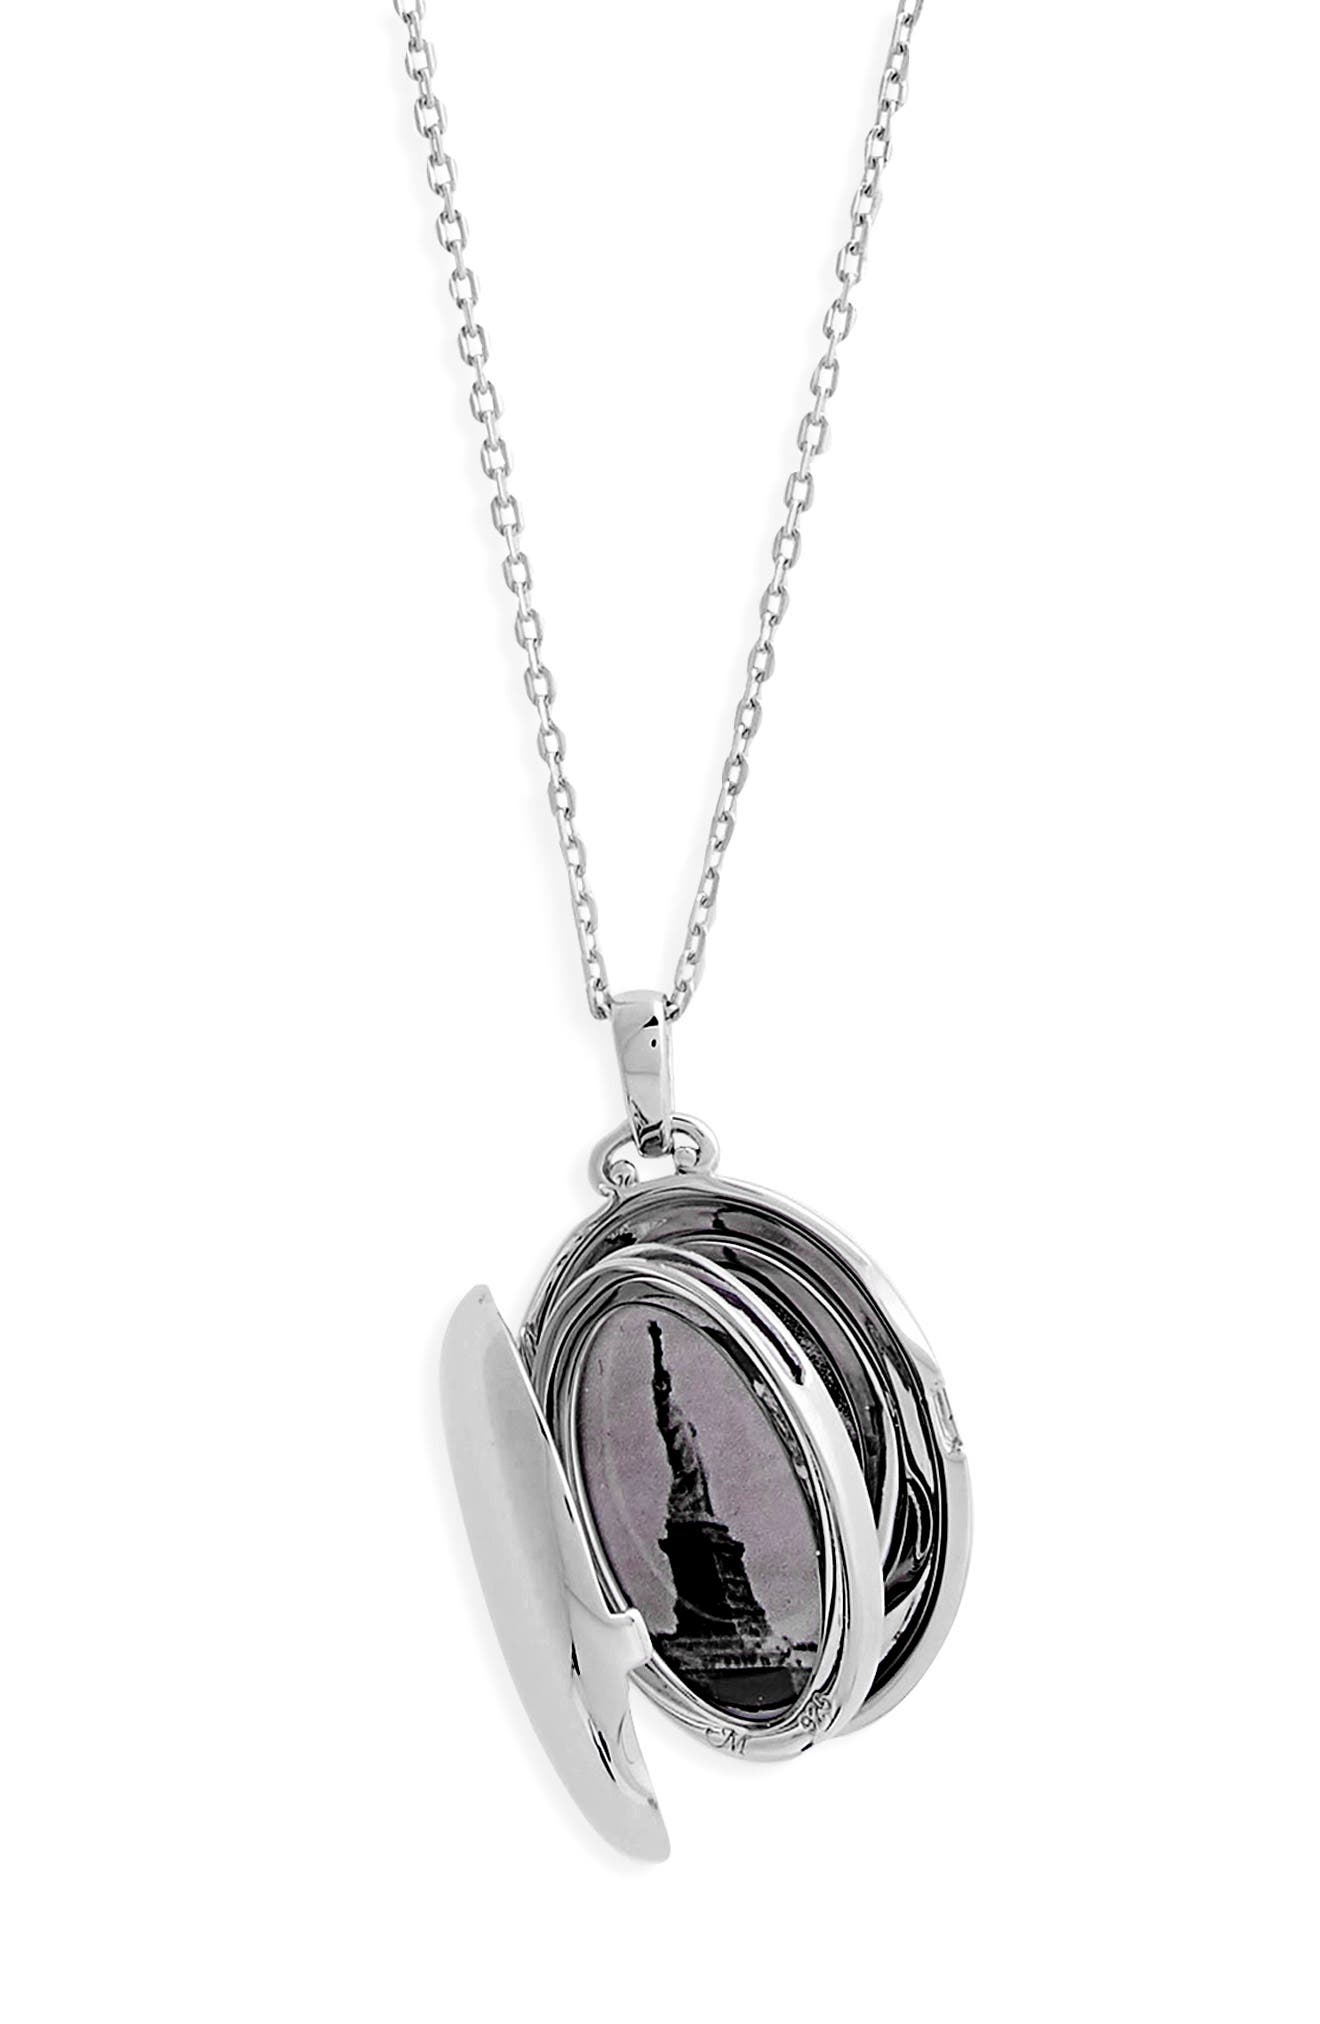 Four Image Mini Locket Necklace,                             Alternate thumbnail 4, color,                             Sterling Silver